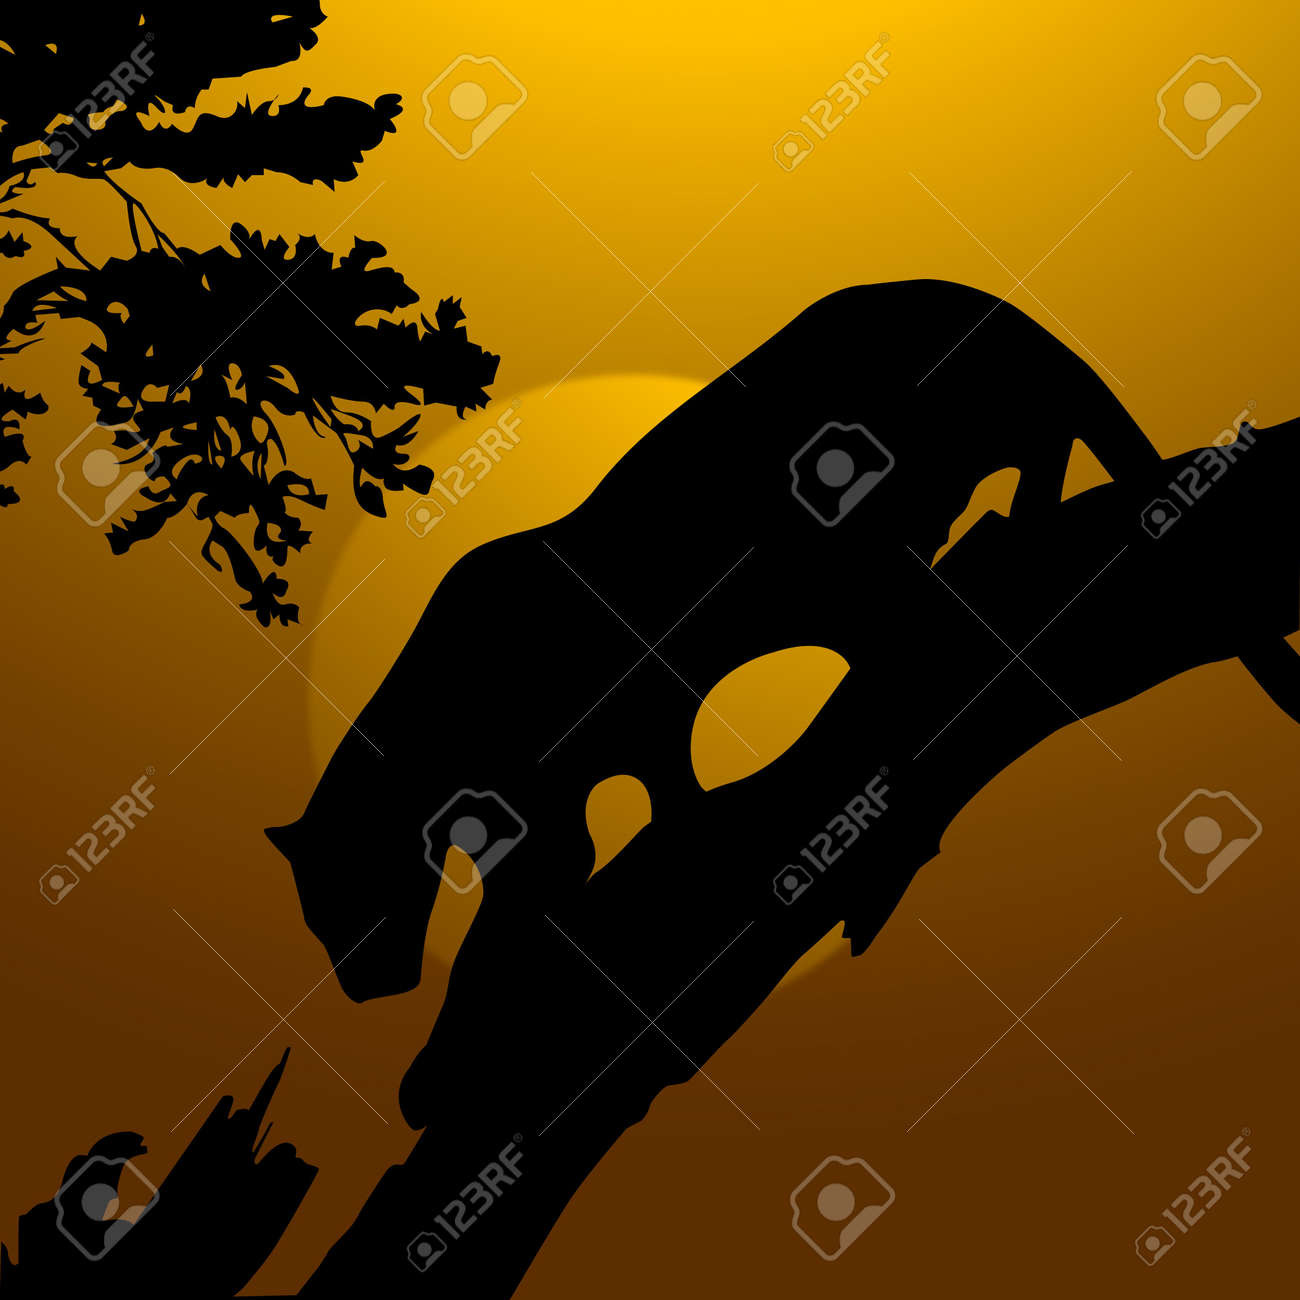 Wildlife Stock Photos Stock Photo silhouette view